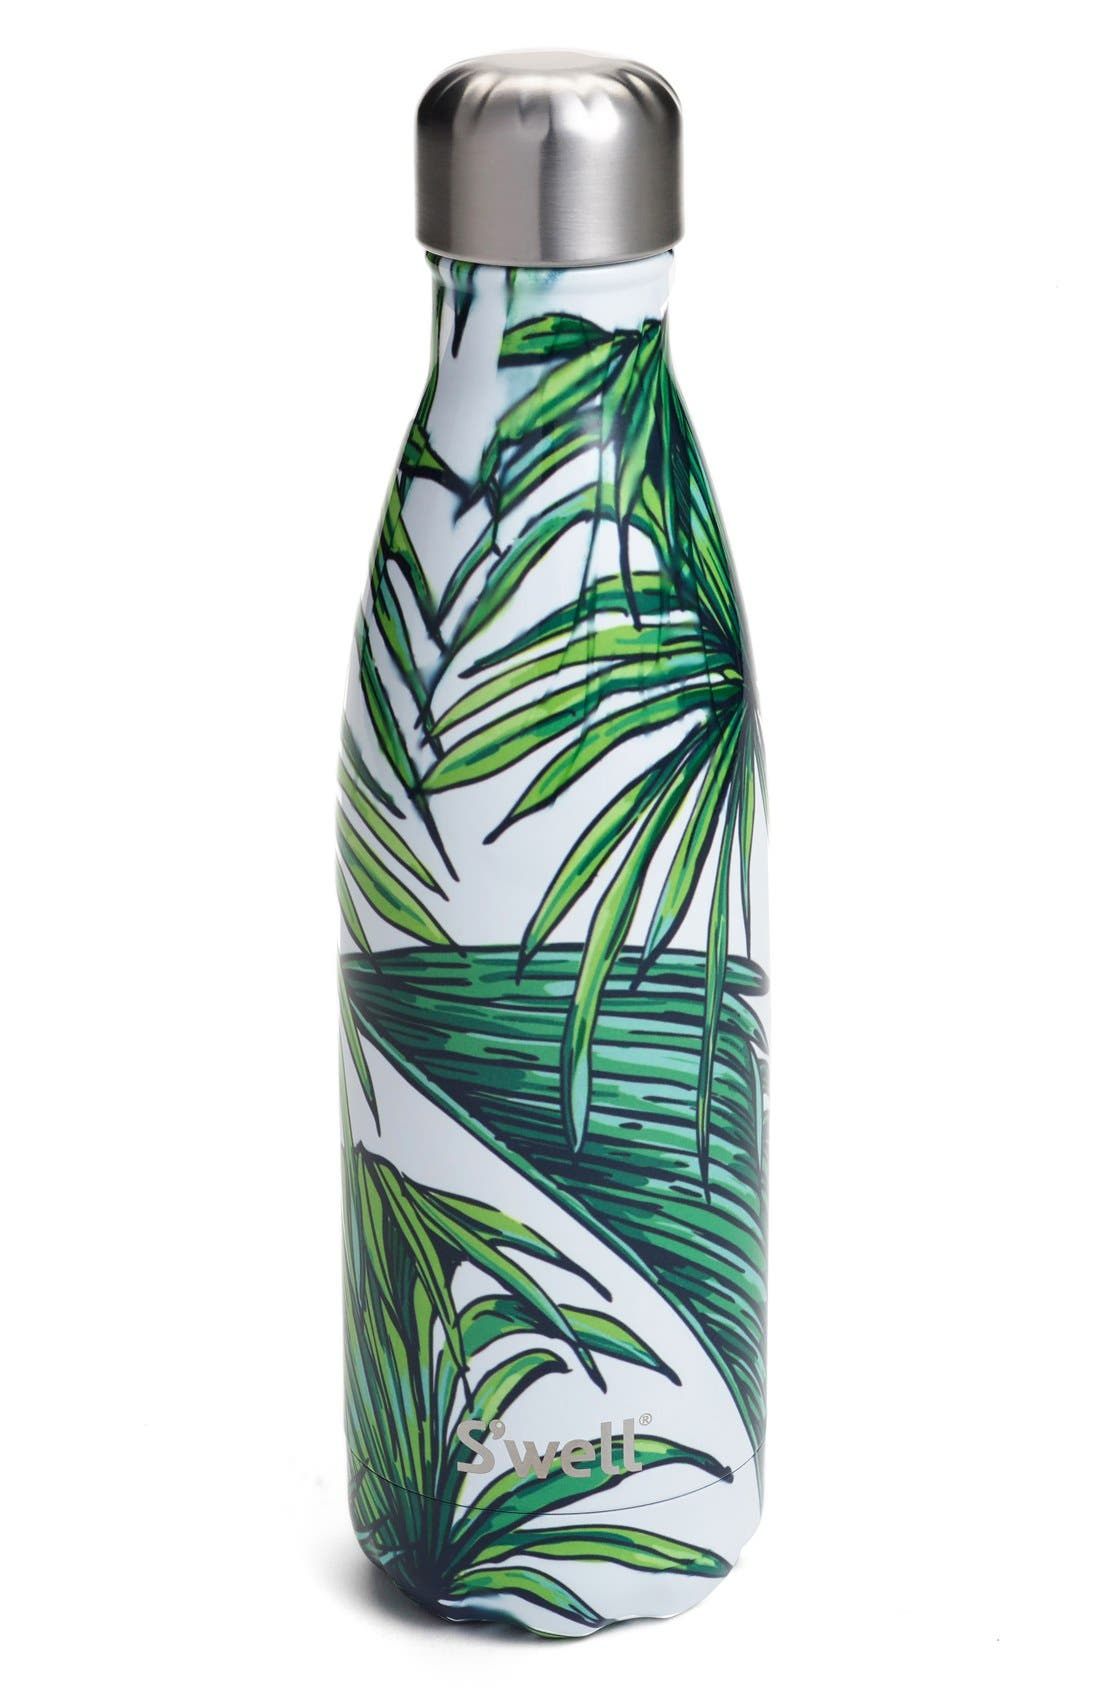 Alternate Image 1 Selected - S'well 'Waikiki' Stainless Steel Water Bottle